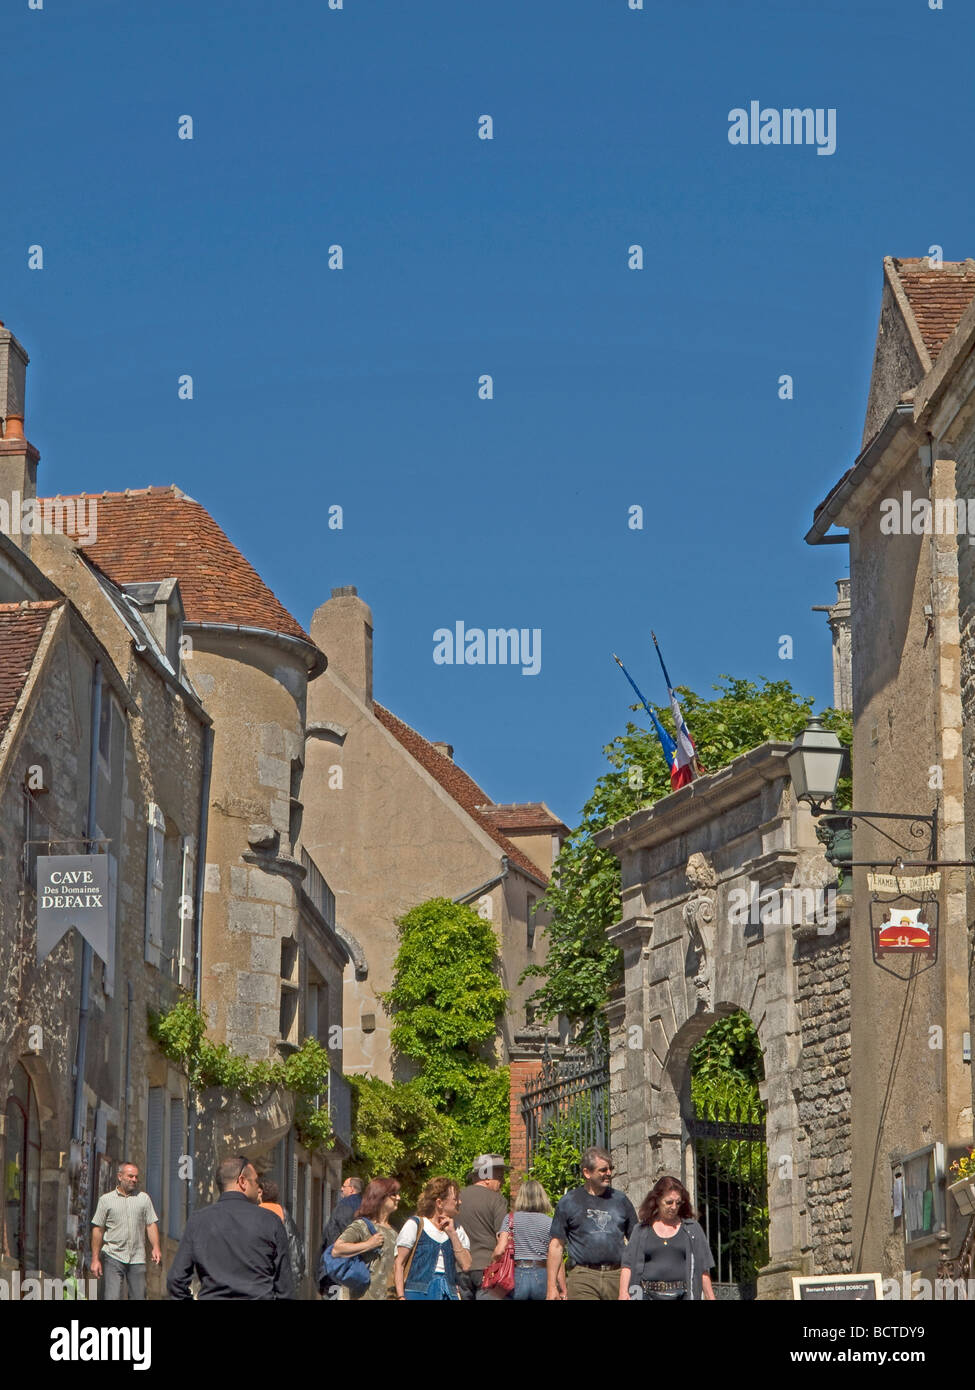 Fußgängerzone für Menschen und Touristen in Vezelay pedestrian area for people and tourists in Vezelay - Stock Image